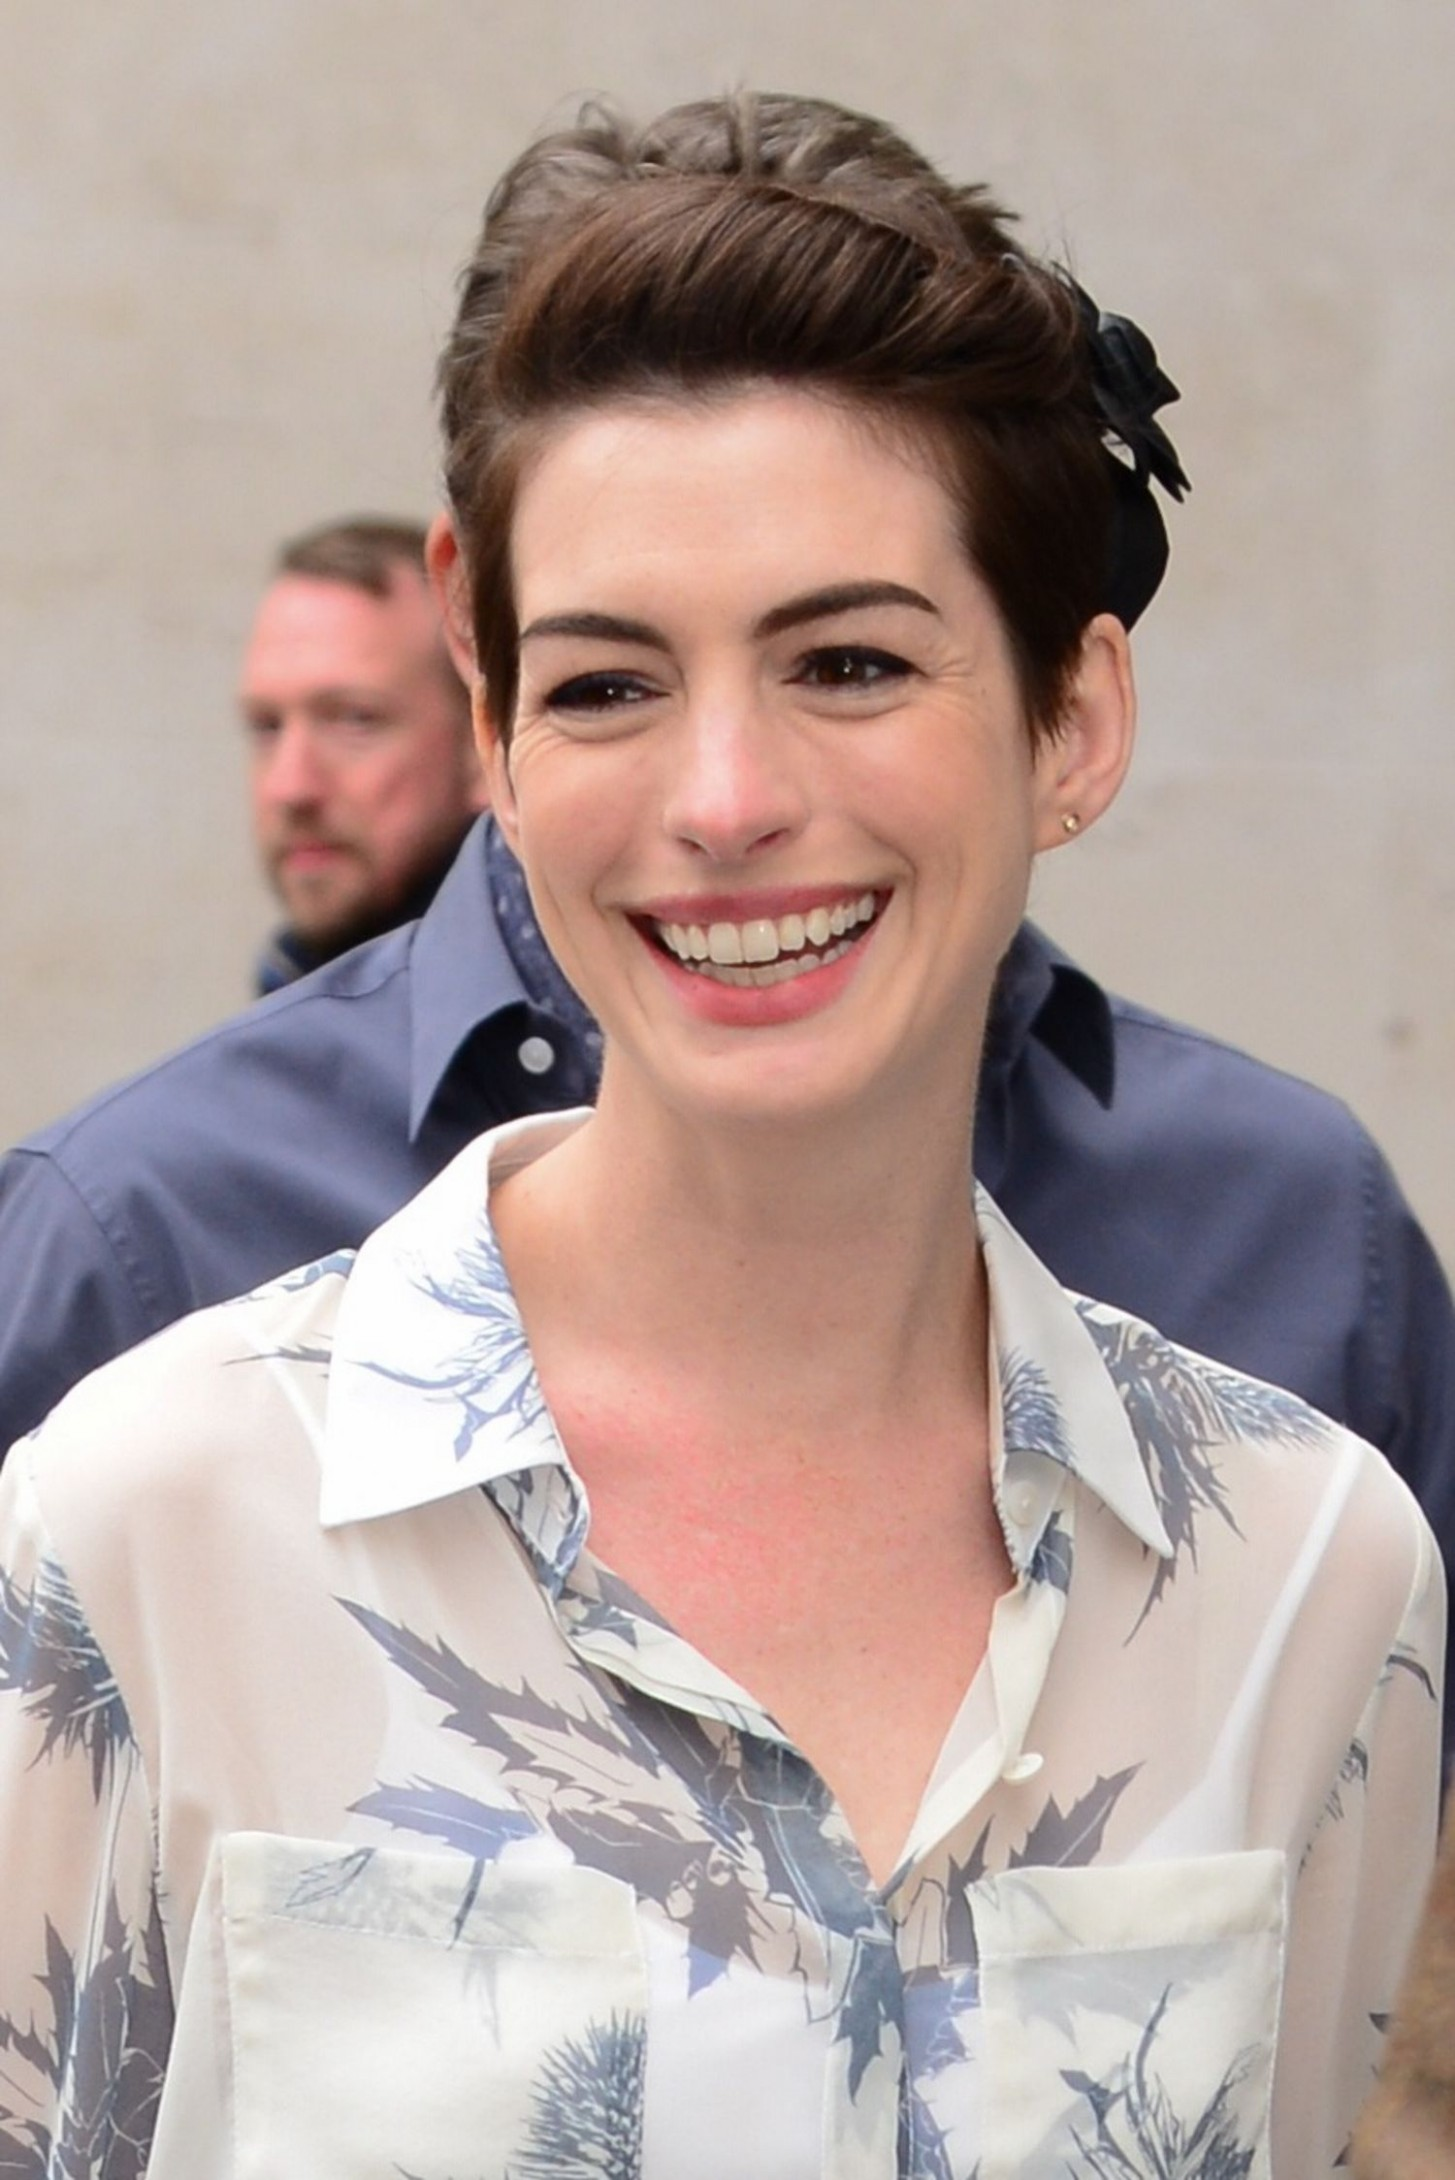 Hairstyle Ideas: How Anne Hathaway's Growing Out Her Pixie Haircut